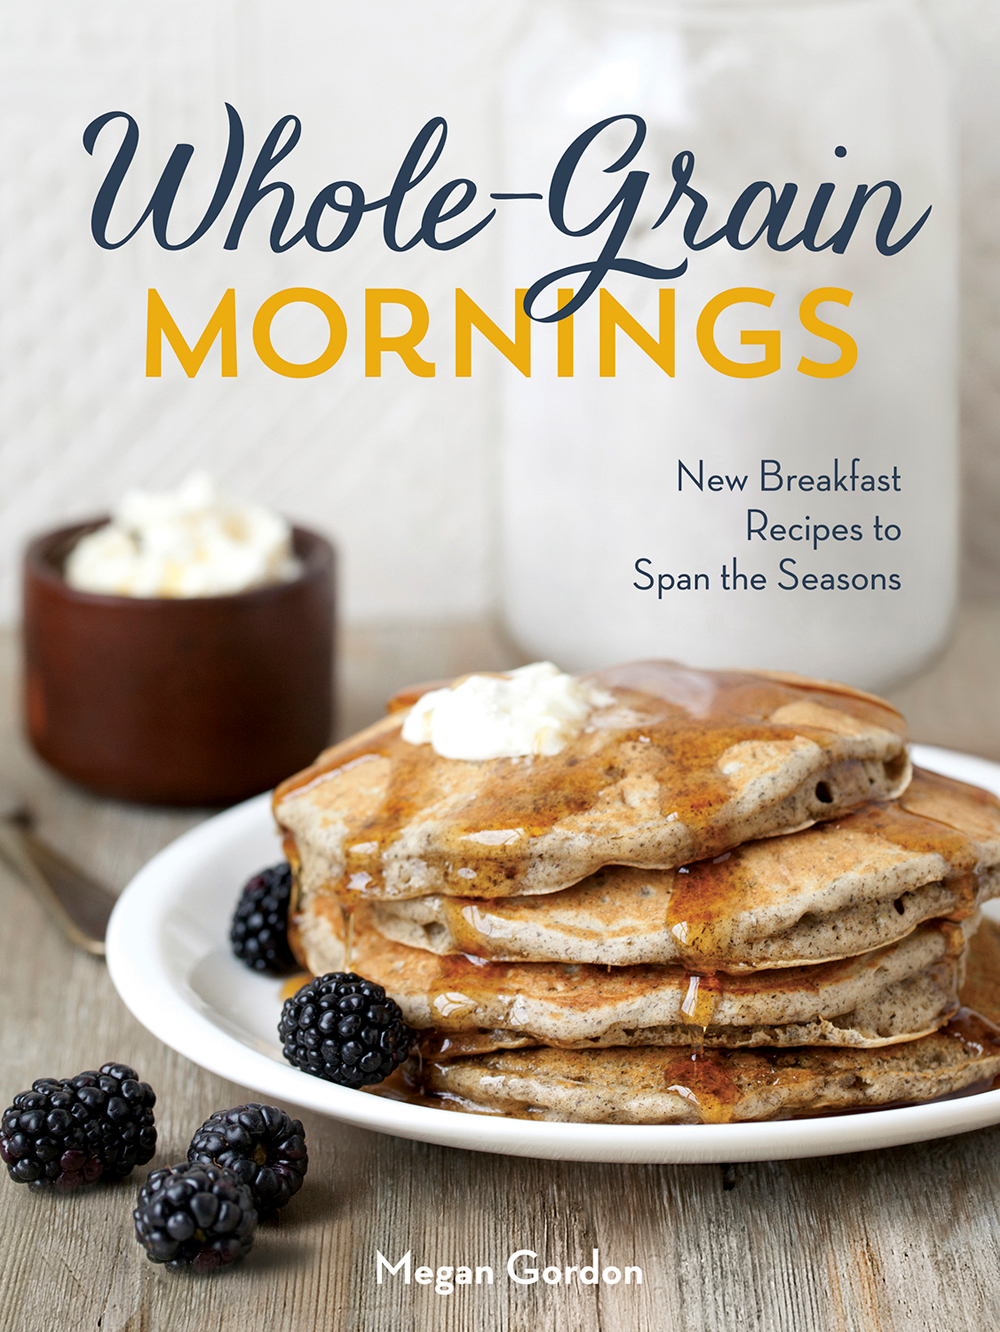 Whole-Grain Mornings: New Breakfast Recipes to Span the Seasons. Author: Megan Gordon